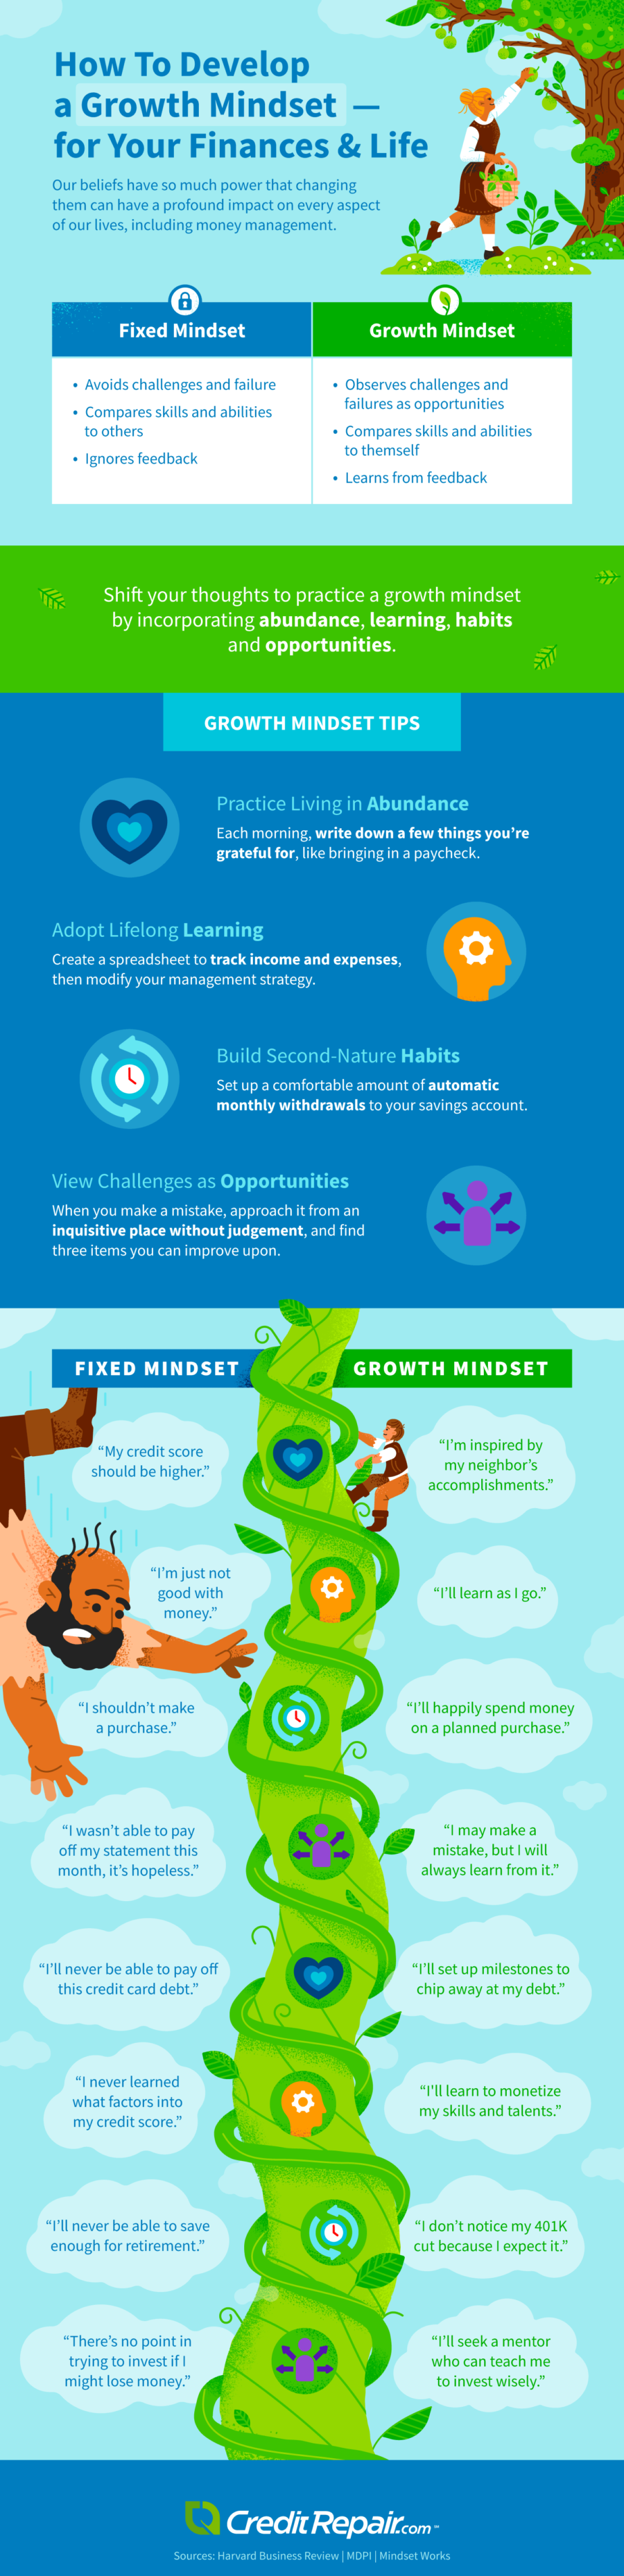 how-to-develop-a-growth-mindset